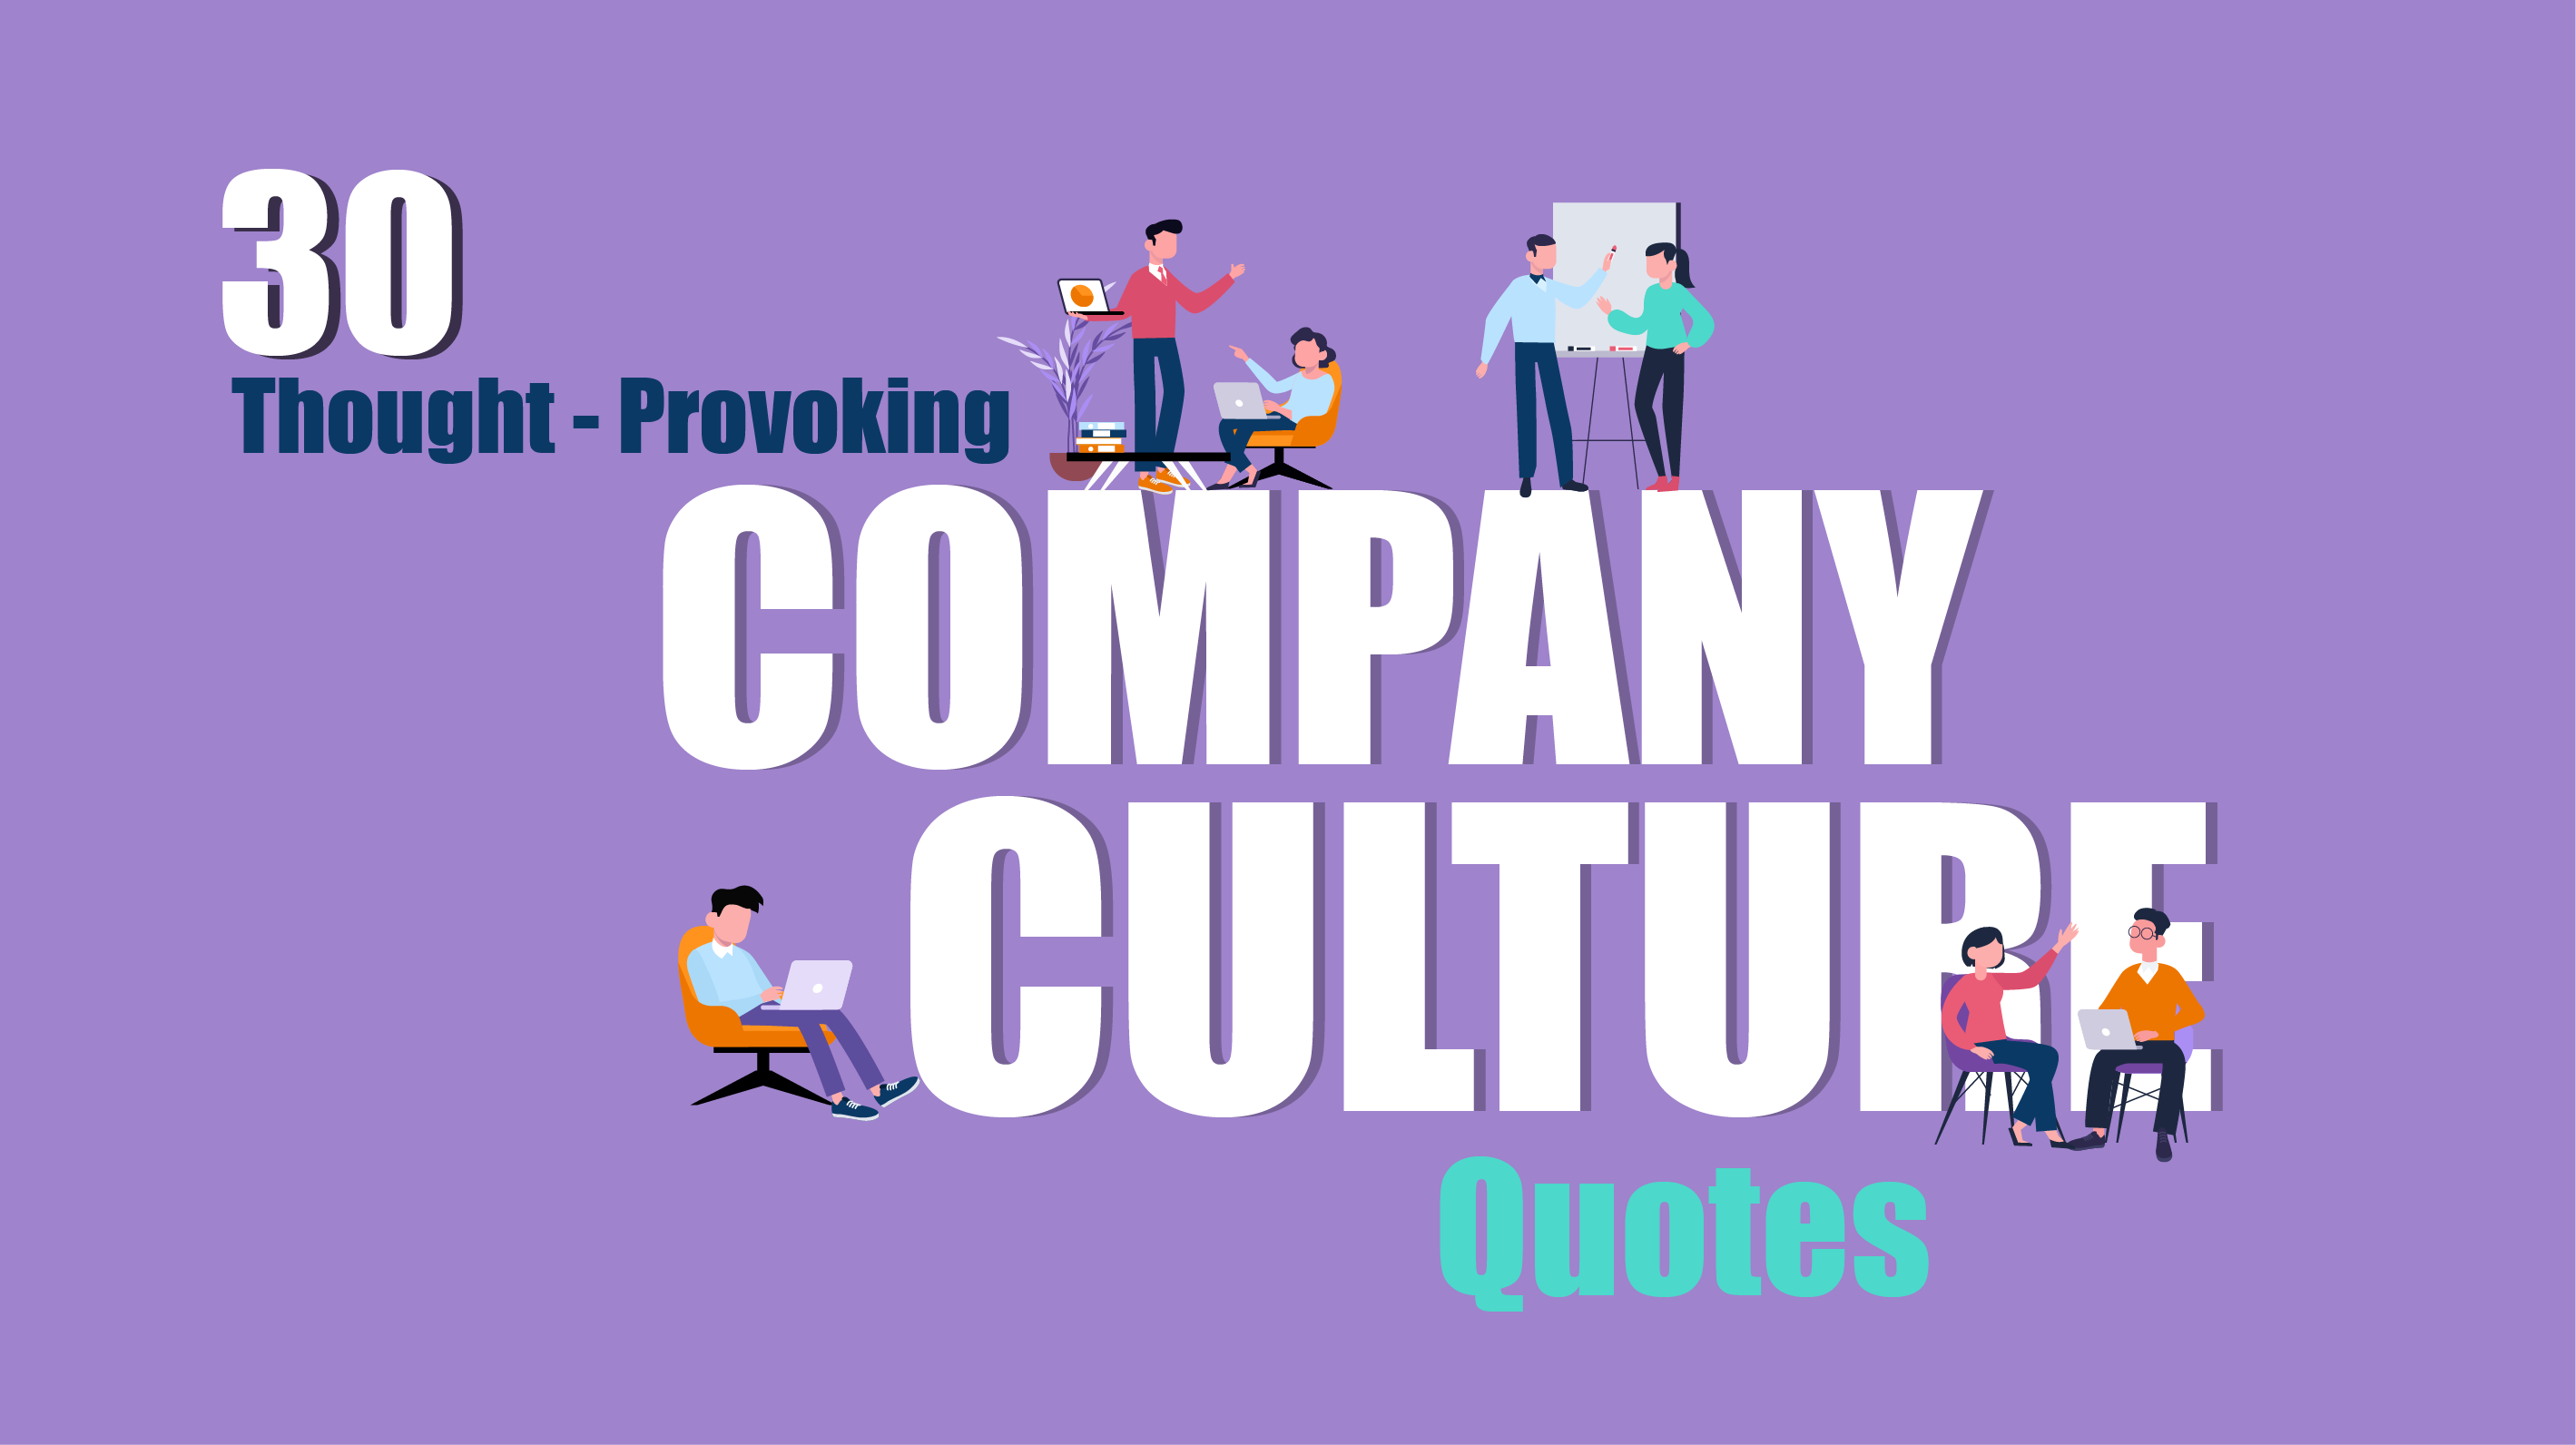 100 Thought-Provoking Company Culture Quotes